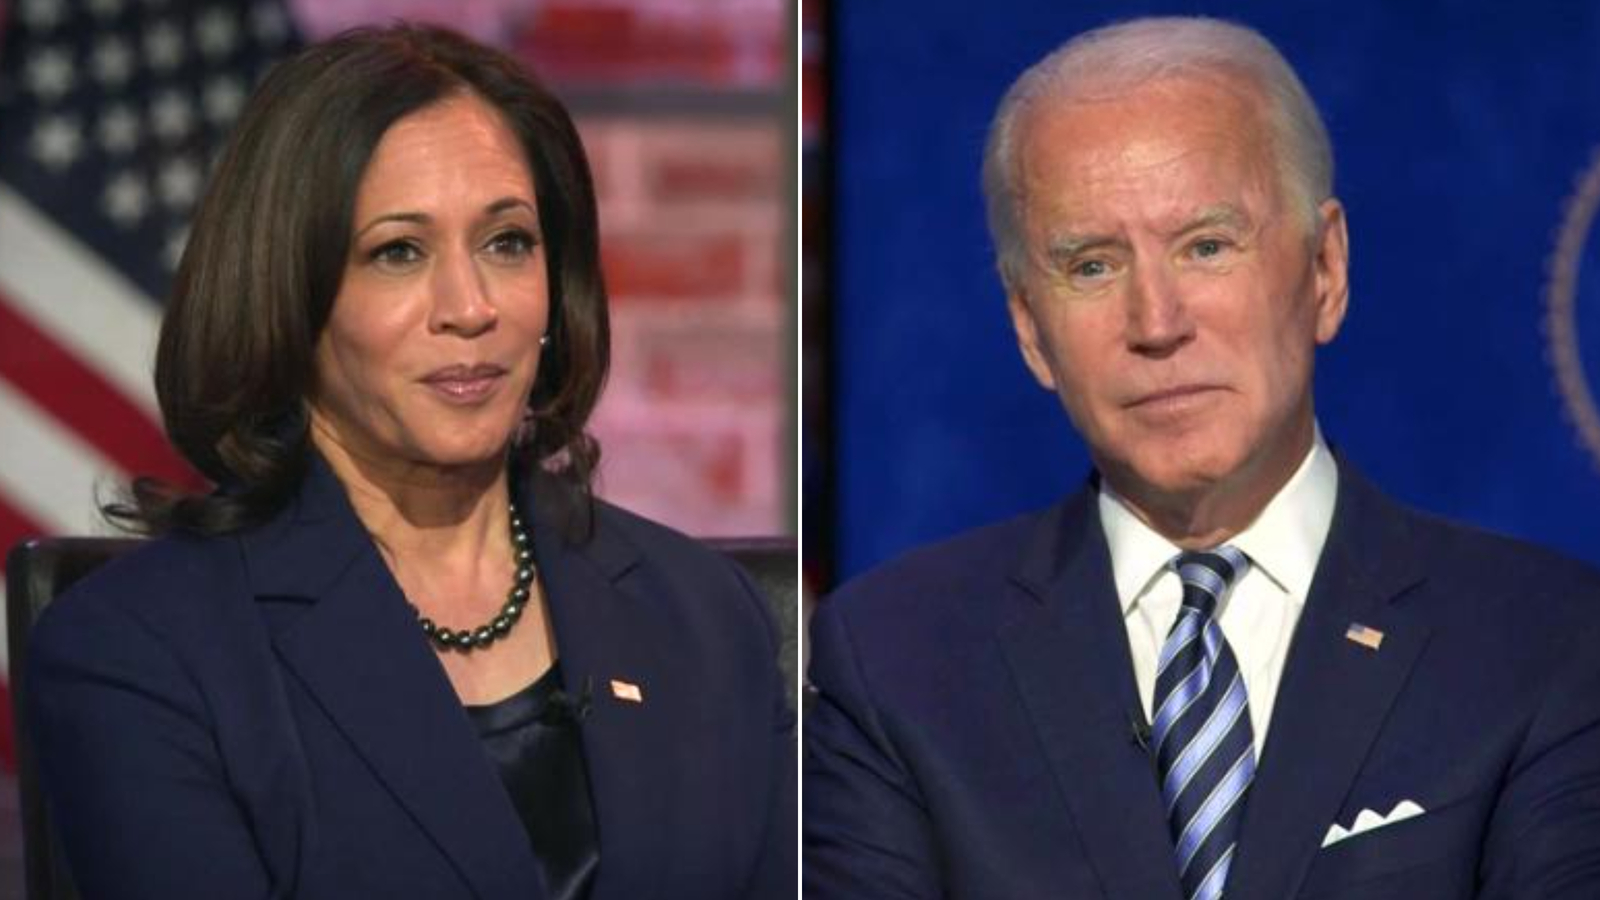 Harris on her working relationship with Biden: 'We are full partners in thisprocess'